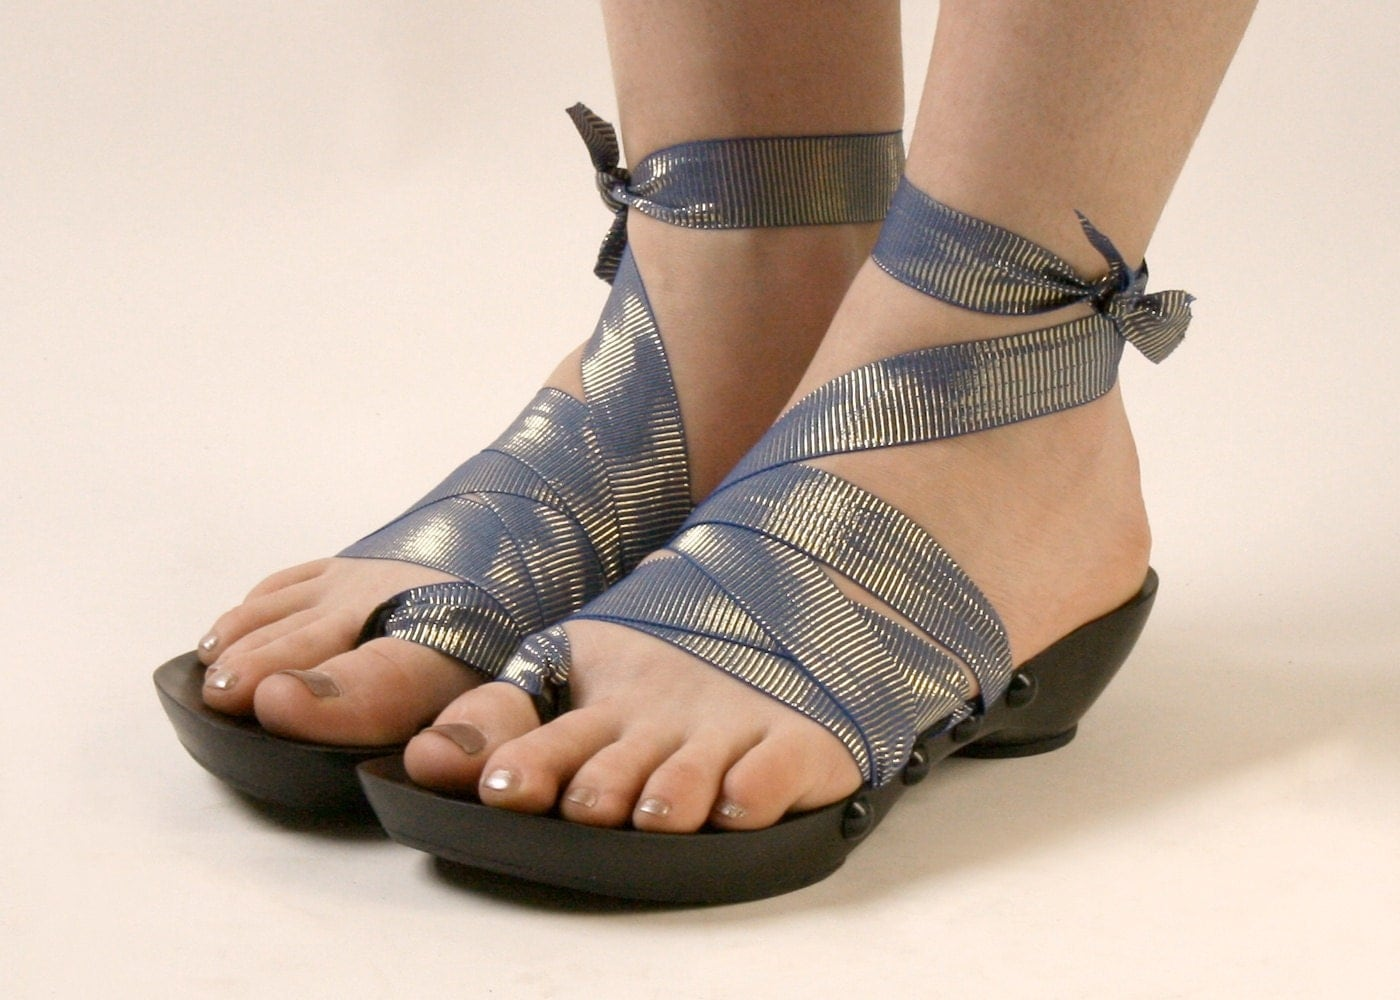 Mohop Shoes Vegan Sandals With Interchangeable Ribbons